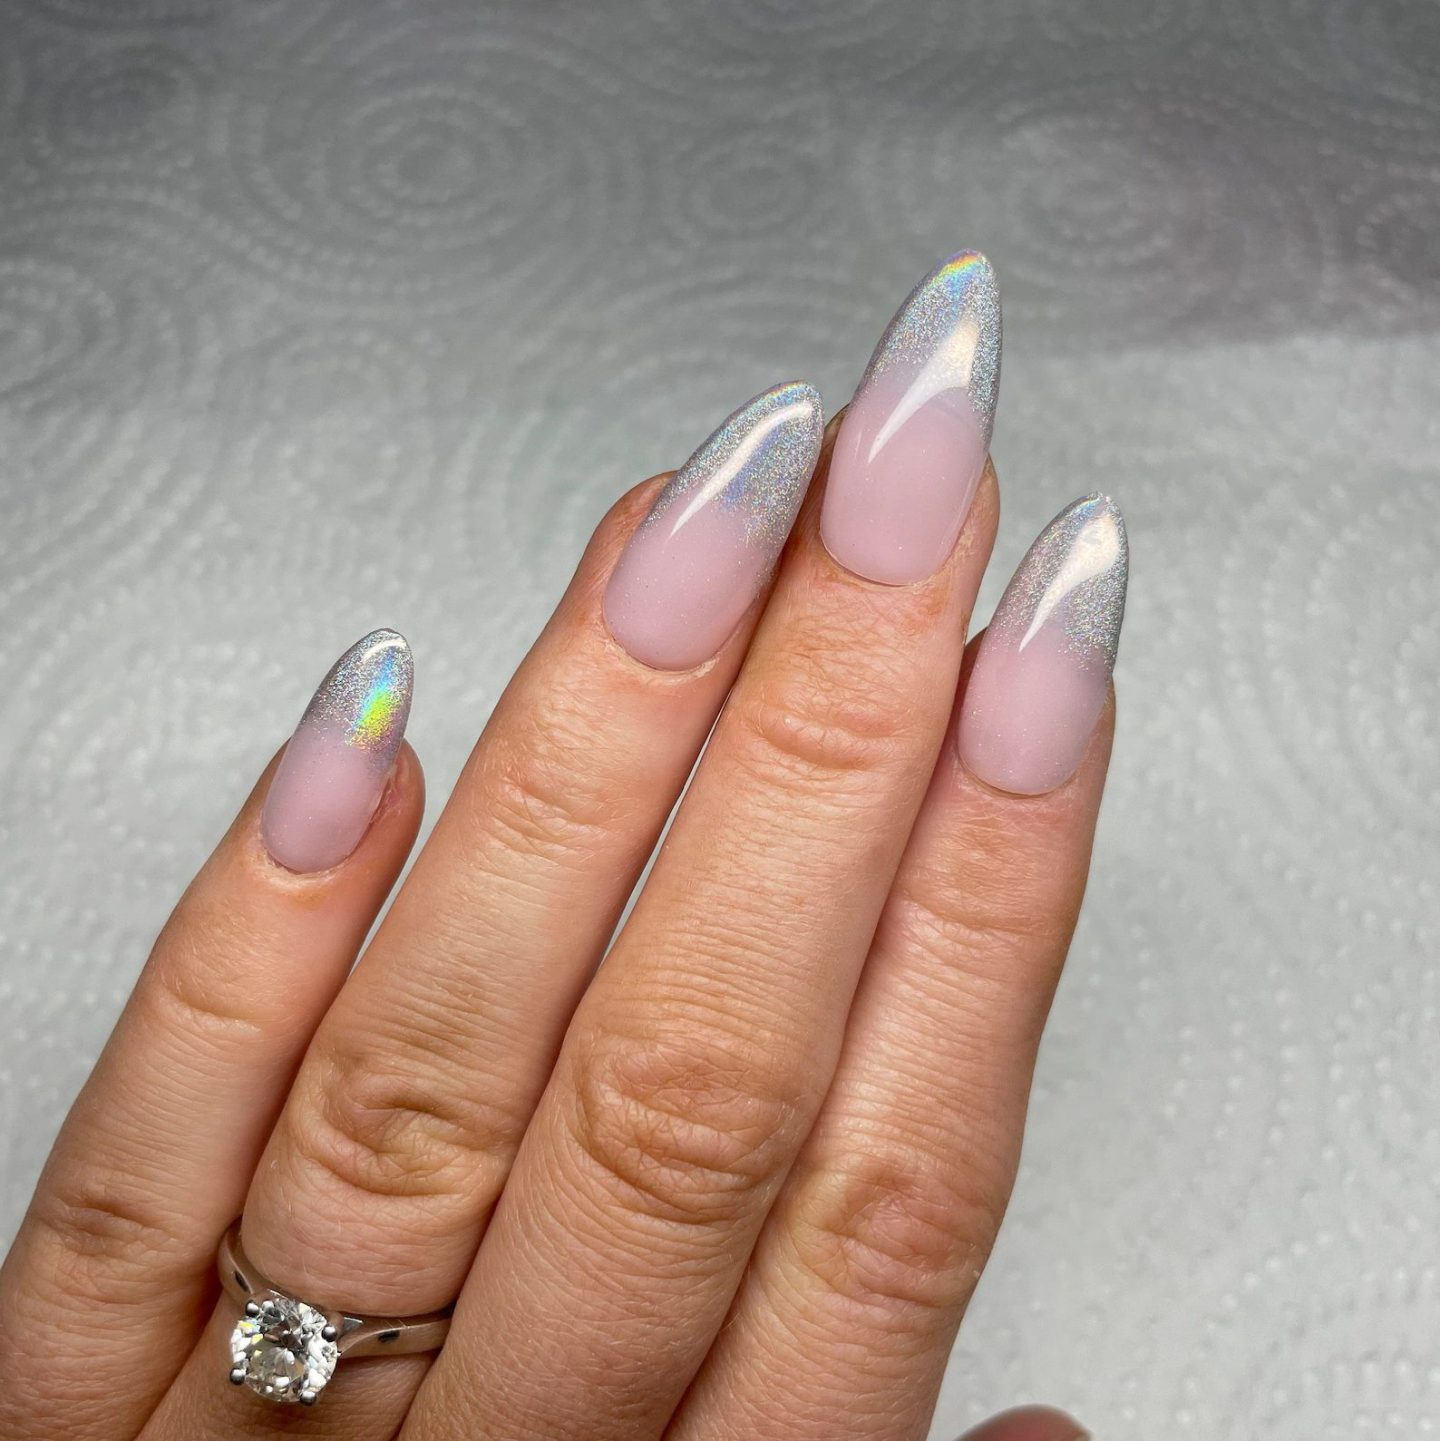 Cute holographic silver chrome French tip nails in almond shaoe